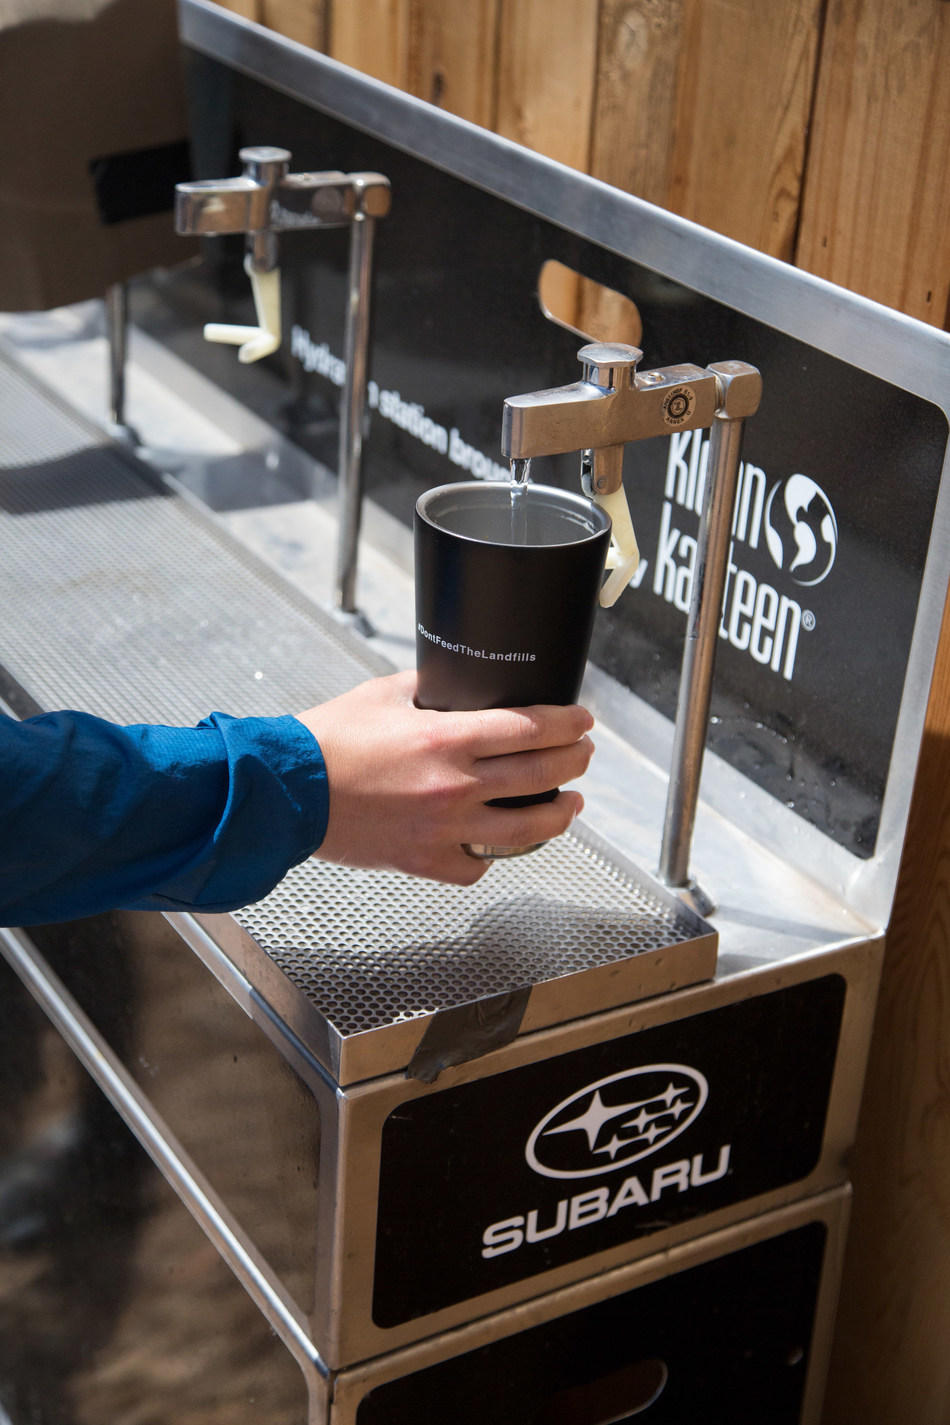 Klean Kanteen and Subaru Launch Multi-Year Partnership with Shared Sustainability Goal